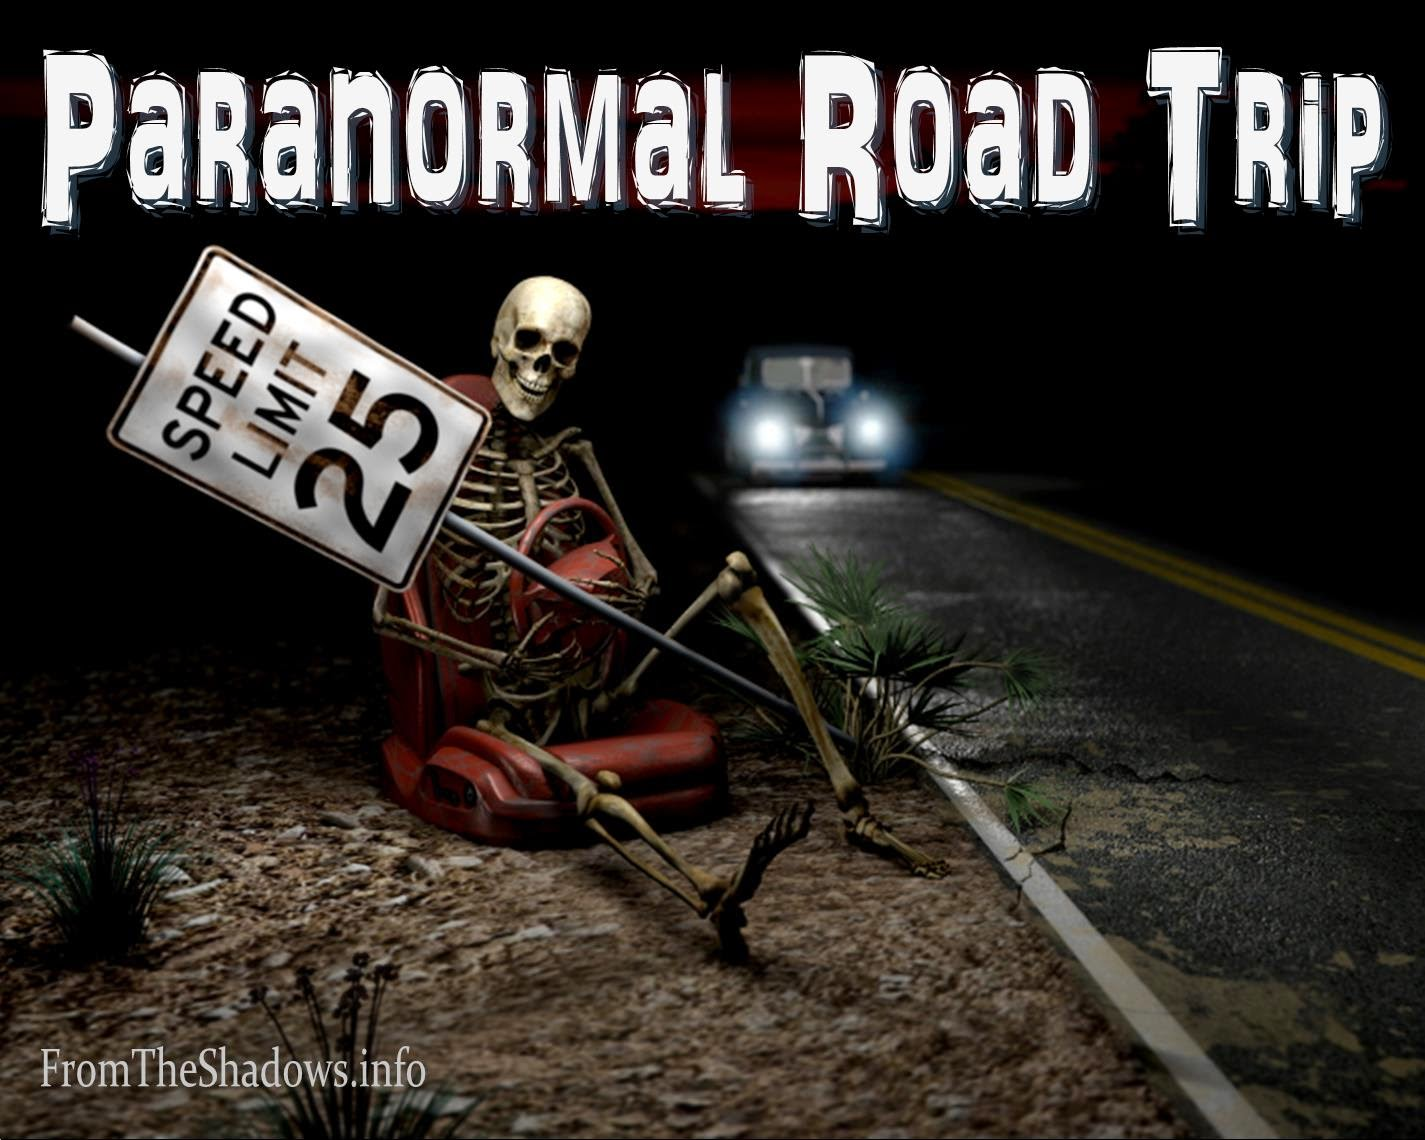 Paranormal Road Trip List of New York City's Top 5 Spooky Places